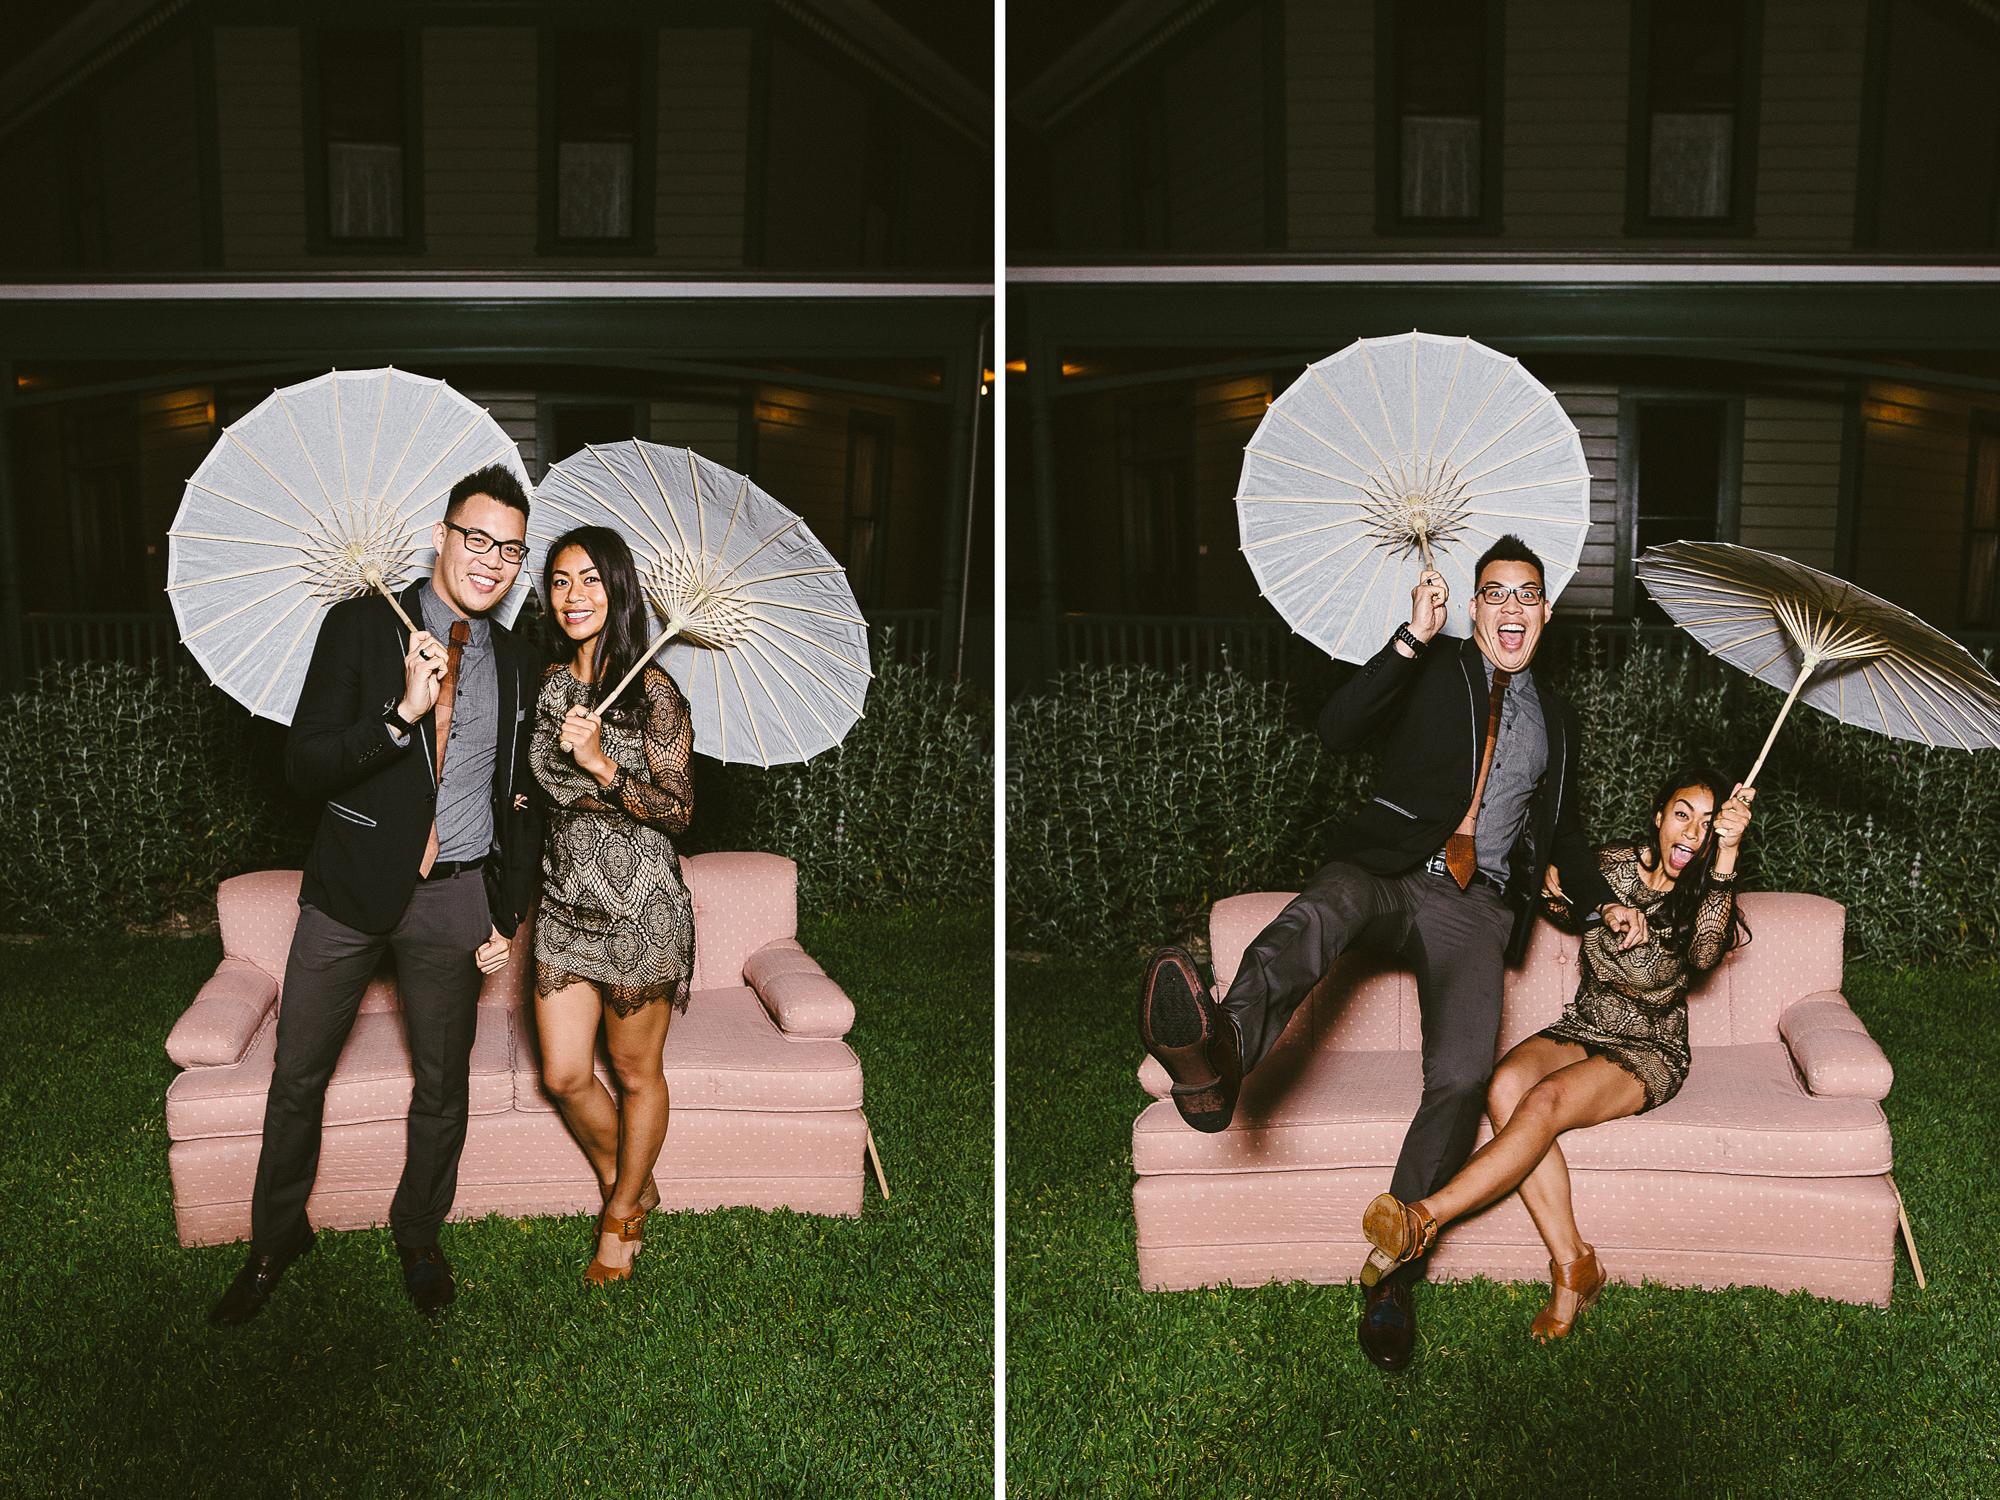 Isaiah & Taylor Photography - Los Angeles - Destination Wedding Photographers - Heritage Square Museum -104.jpg